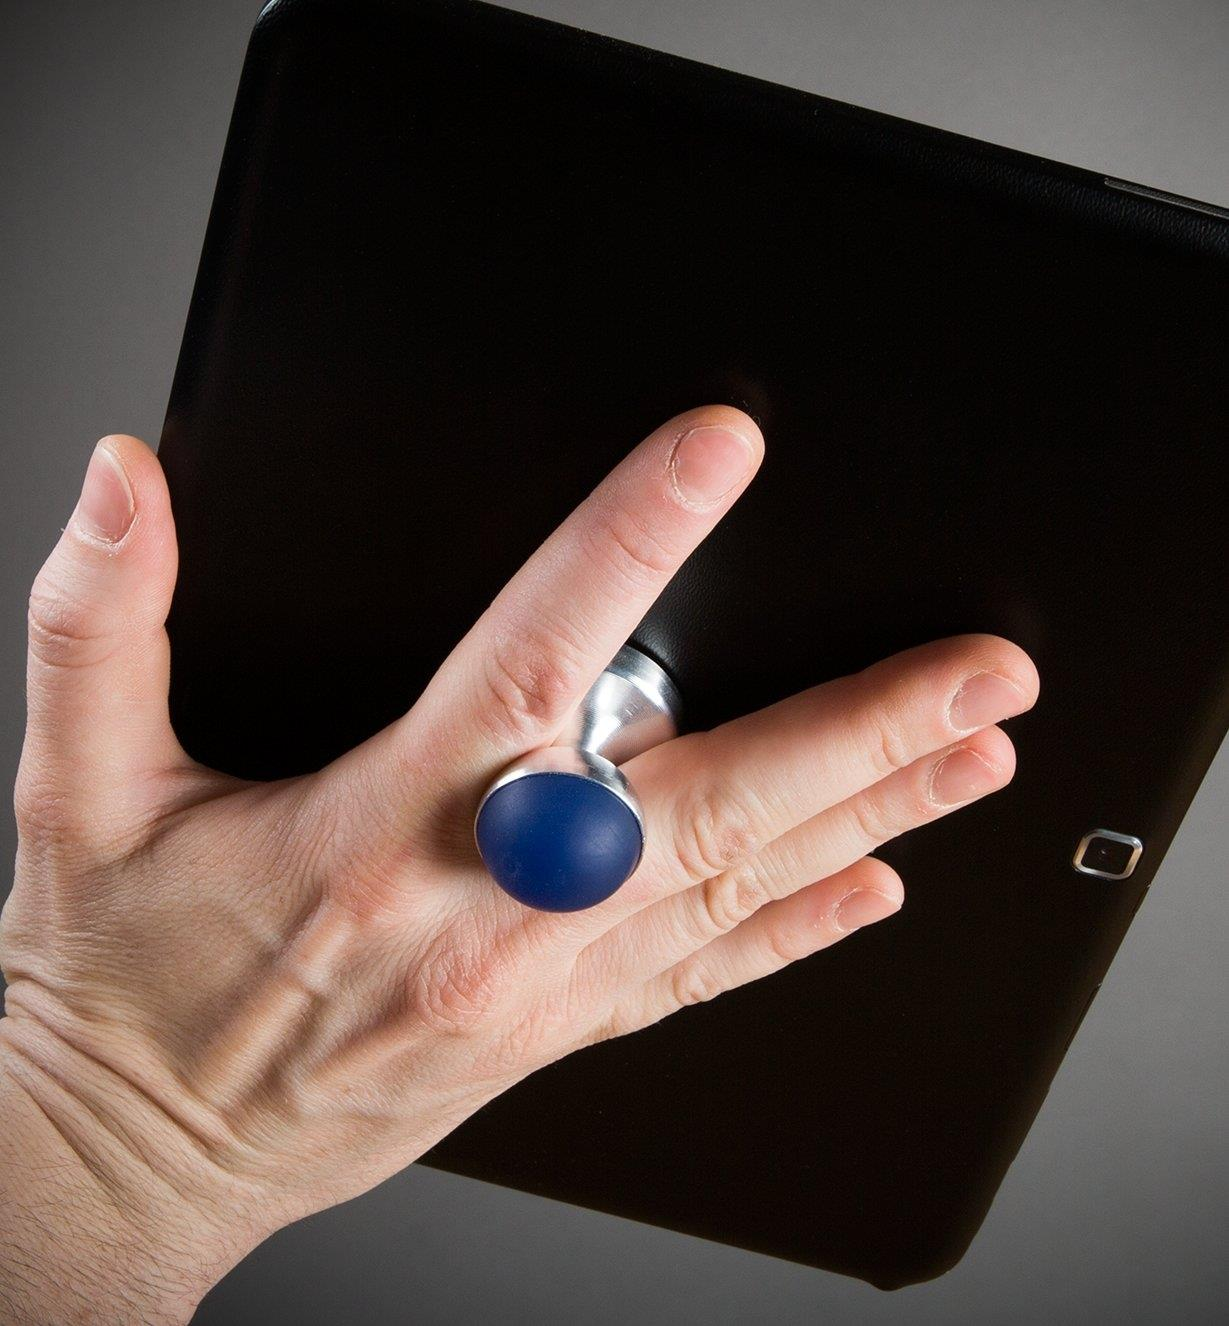 Gripping a tablet in one hand using the HobKnob